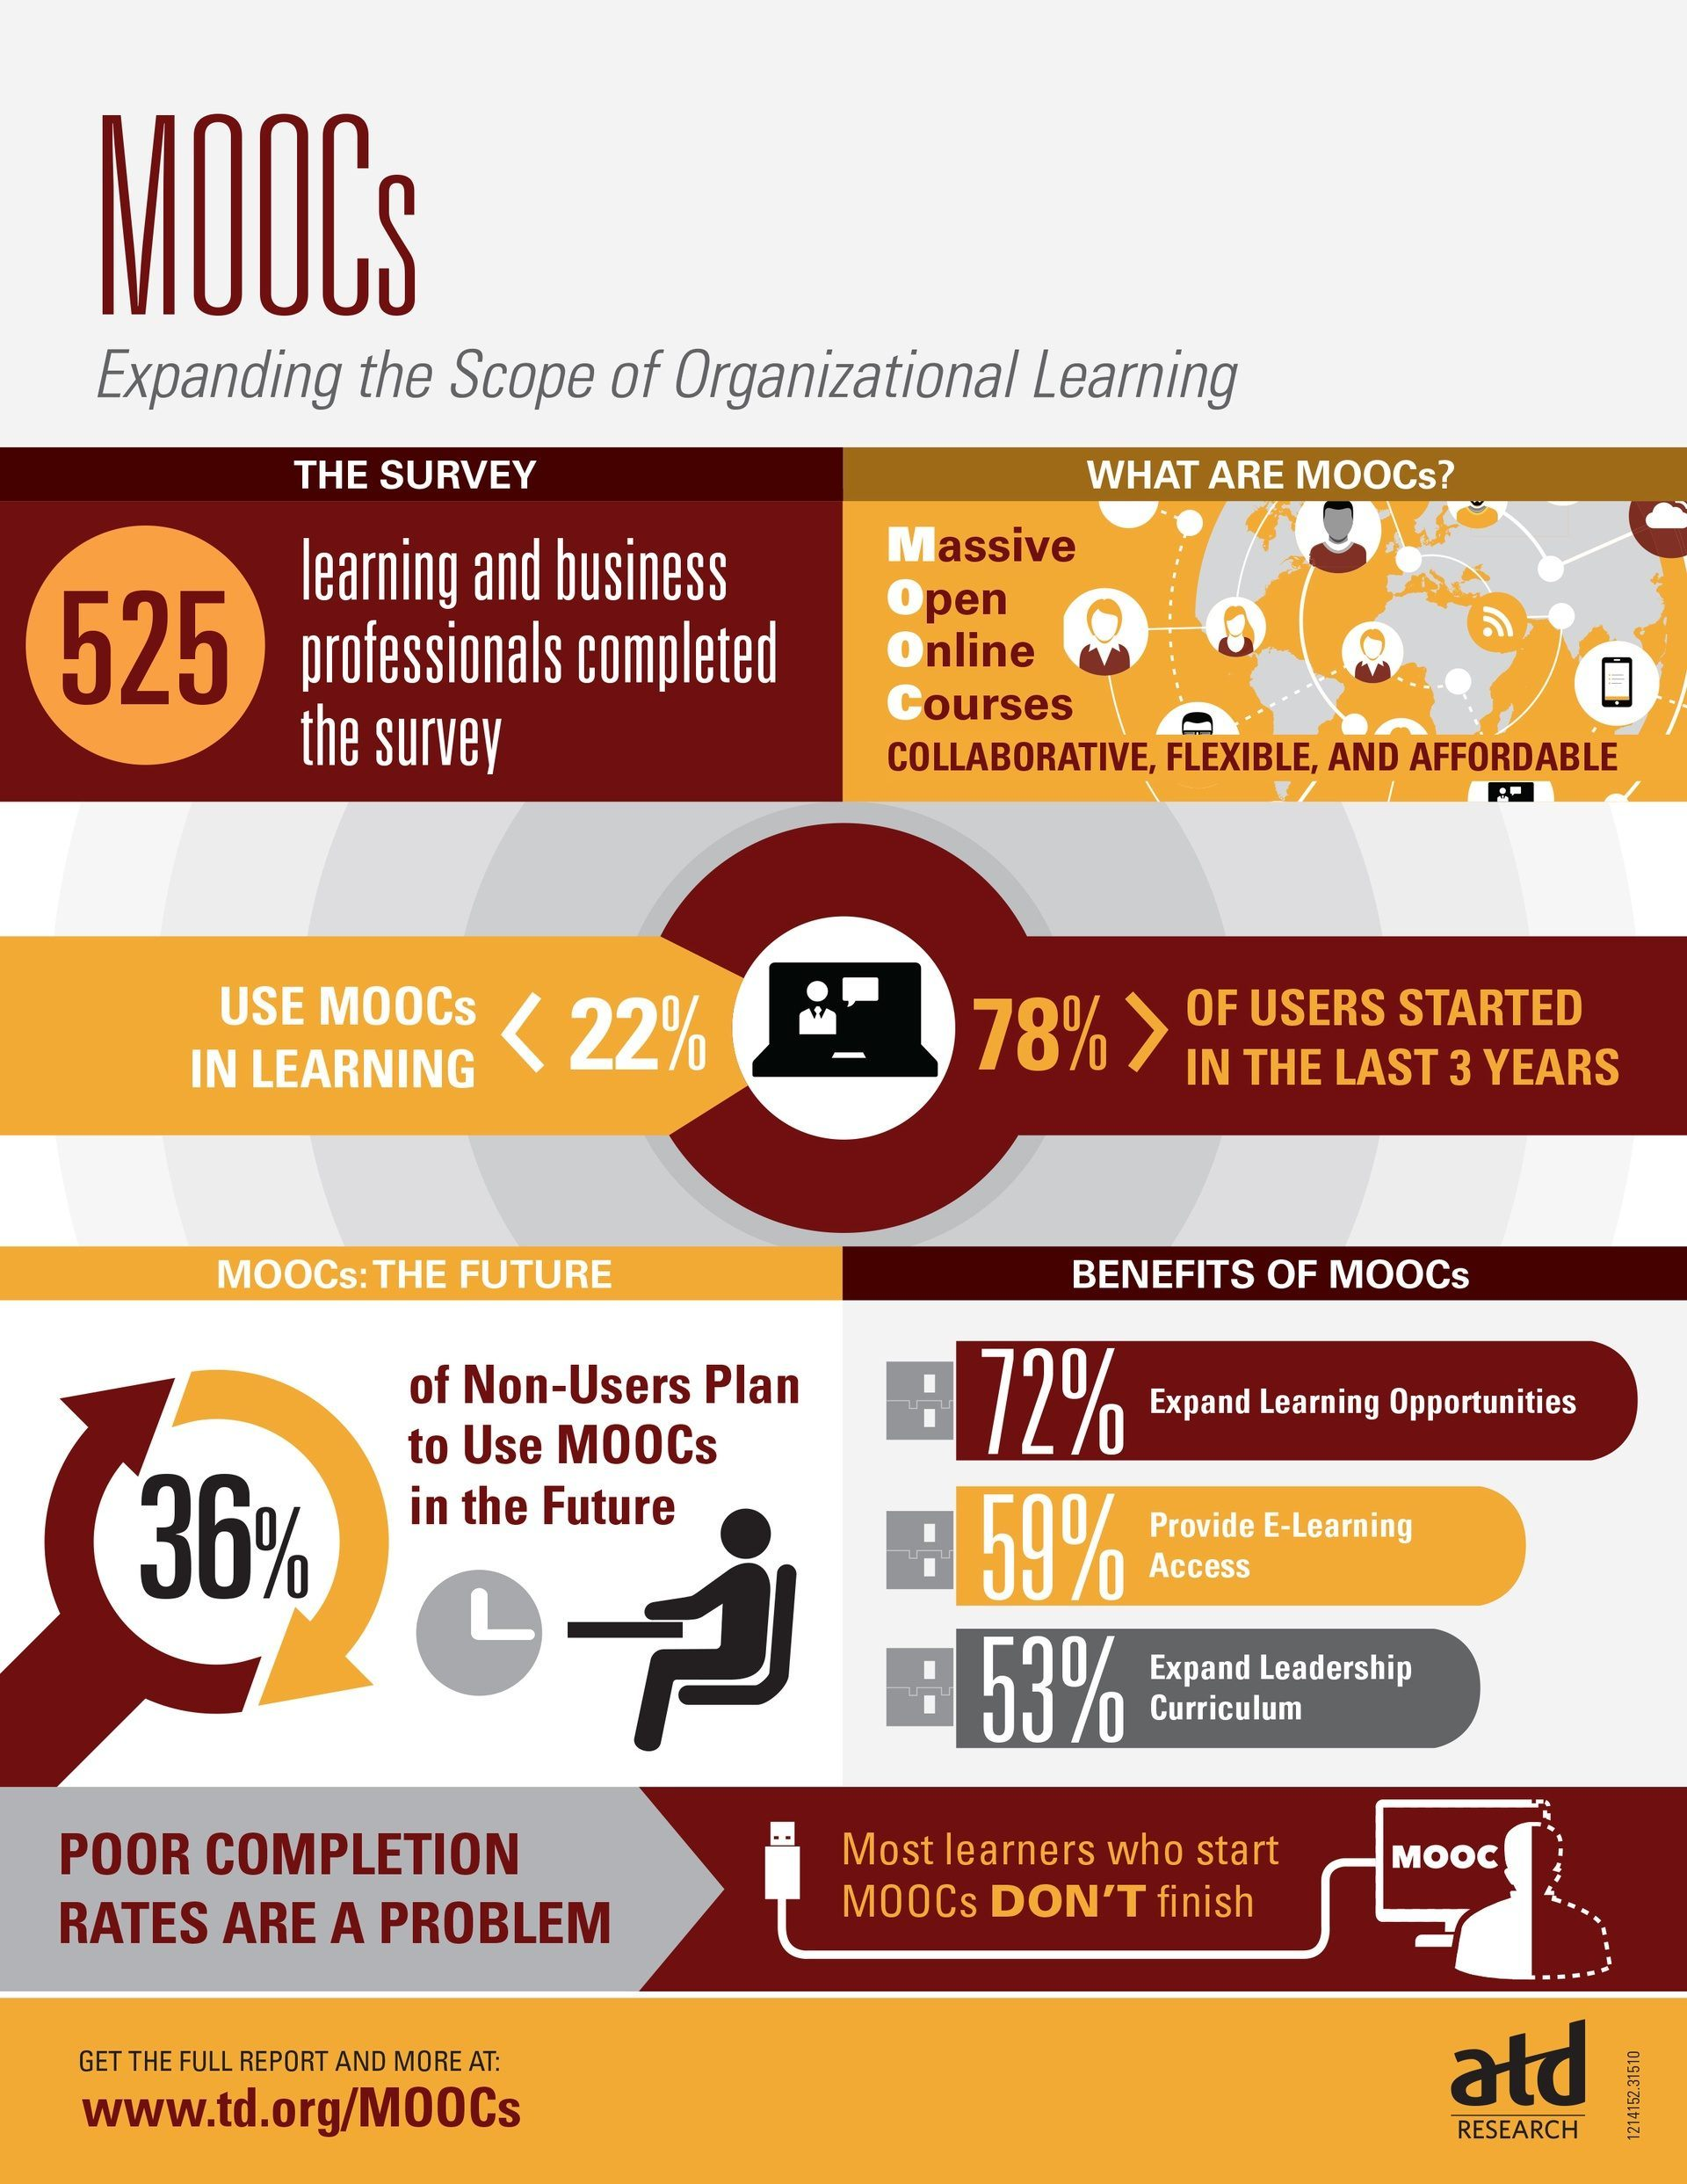 MOOCs: Expanding the Scope of Organizational Learning Infographic